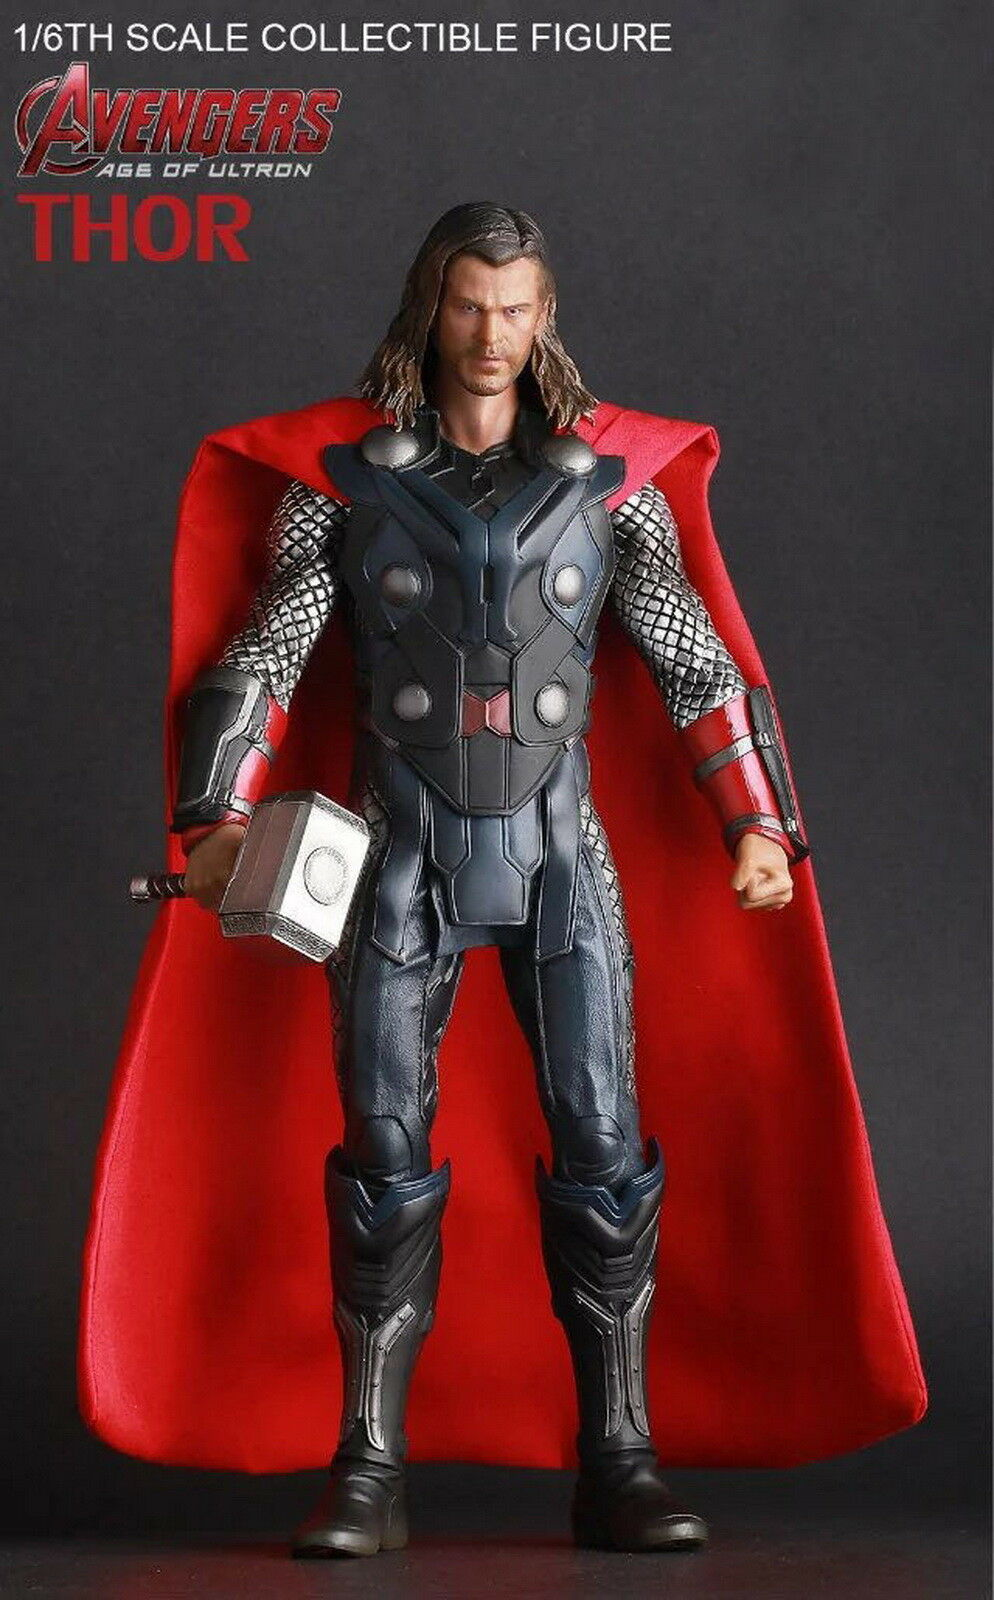 Crazy Toys Avenger 2 Age Of Ultron Thor Collectible Action Figure Toys Model  | Ab dem neuesten Modell